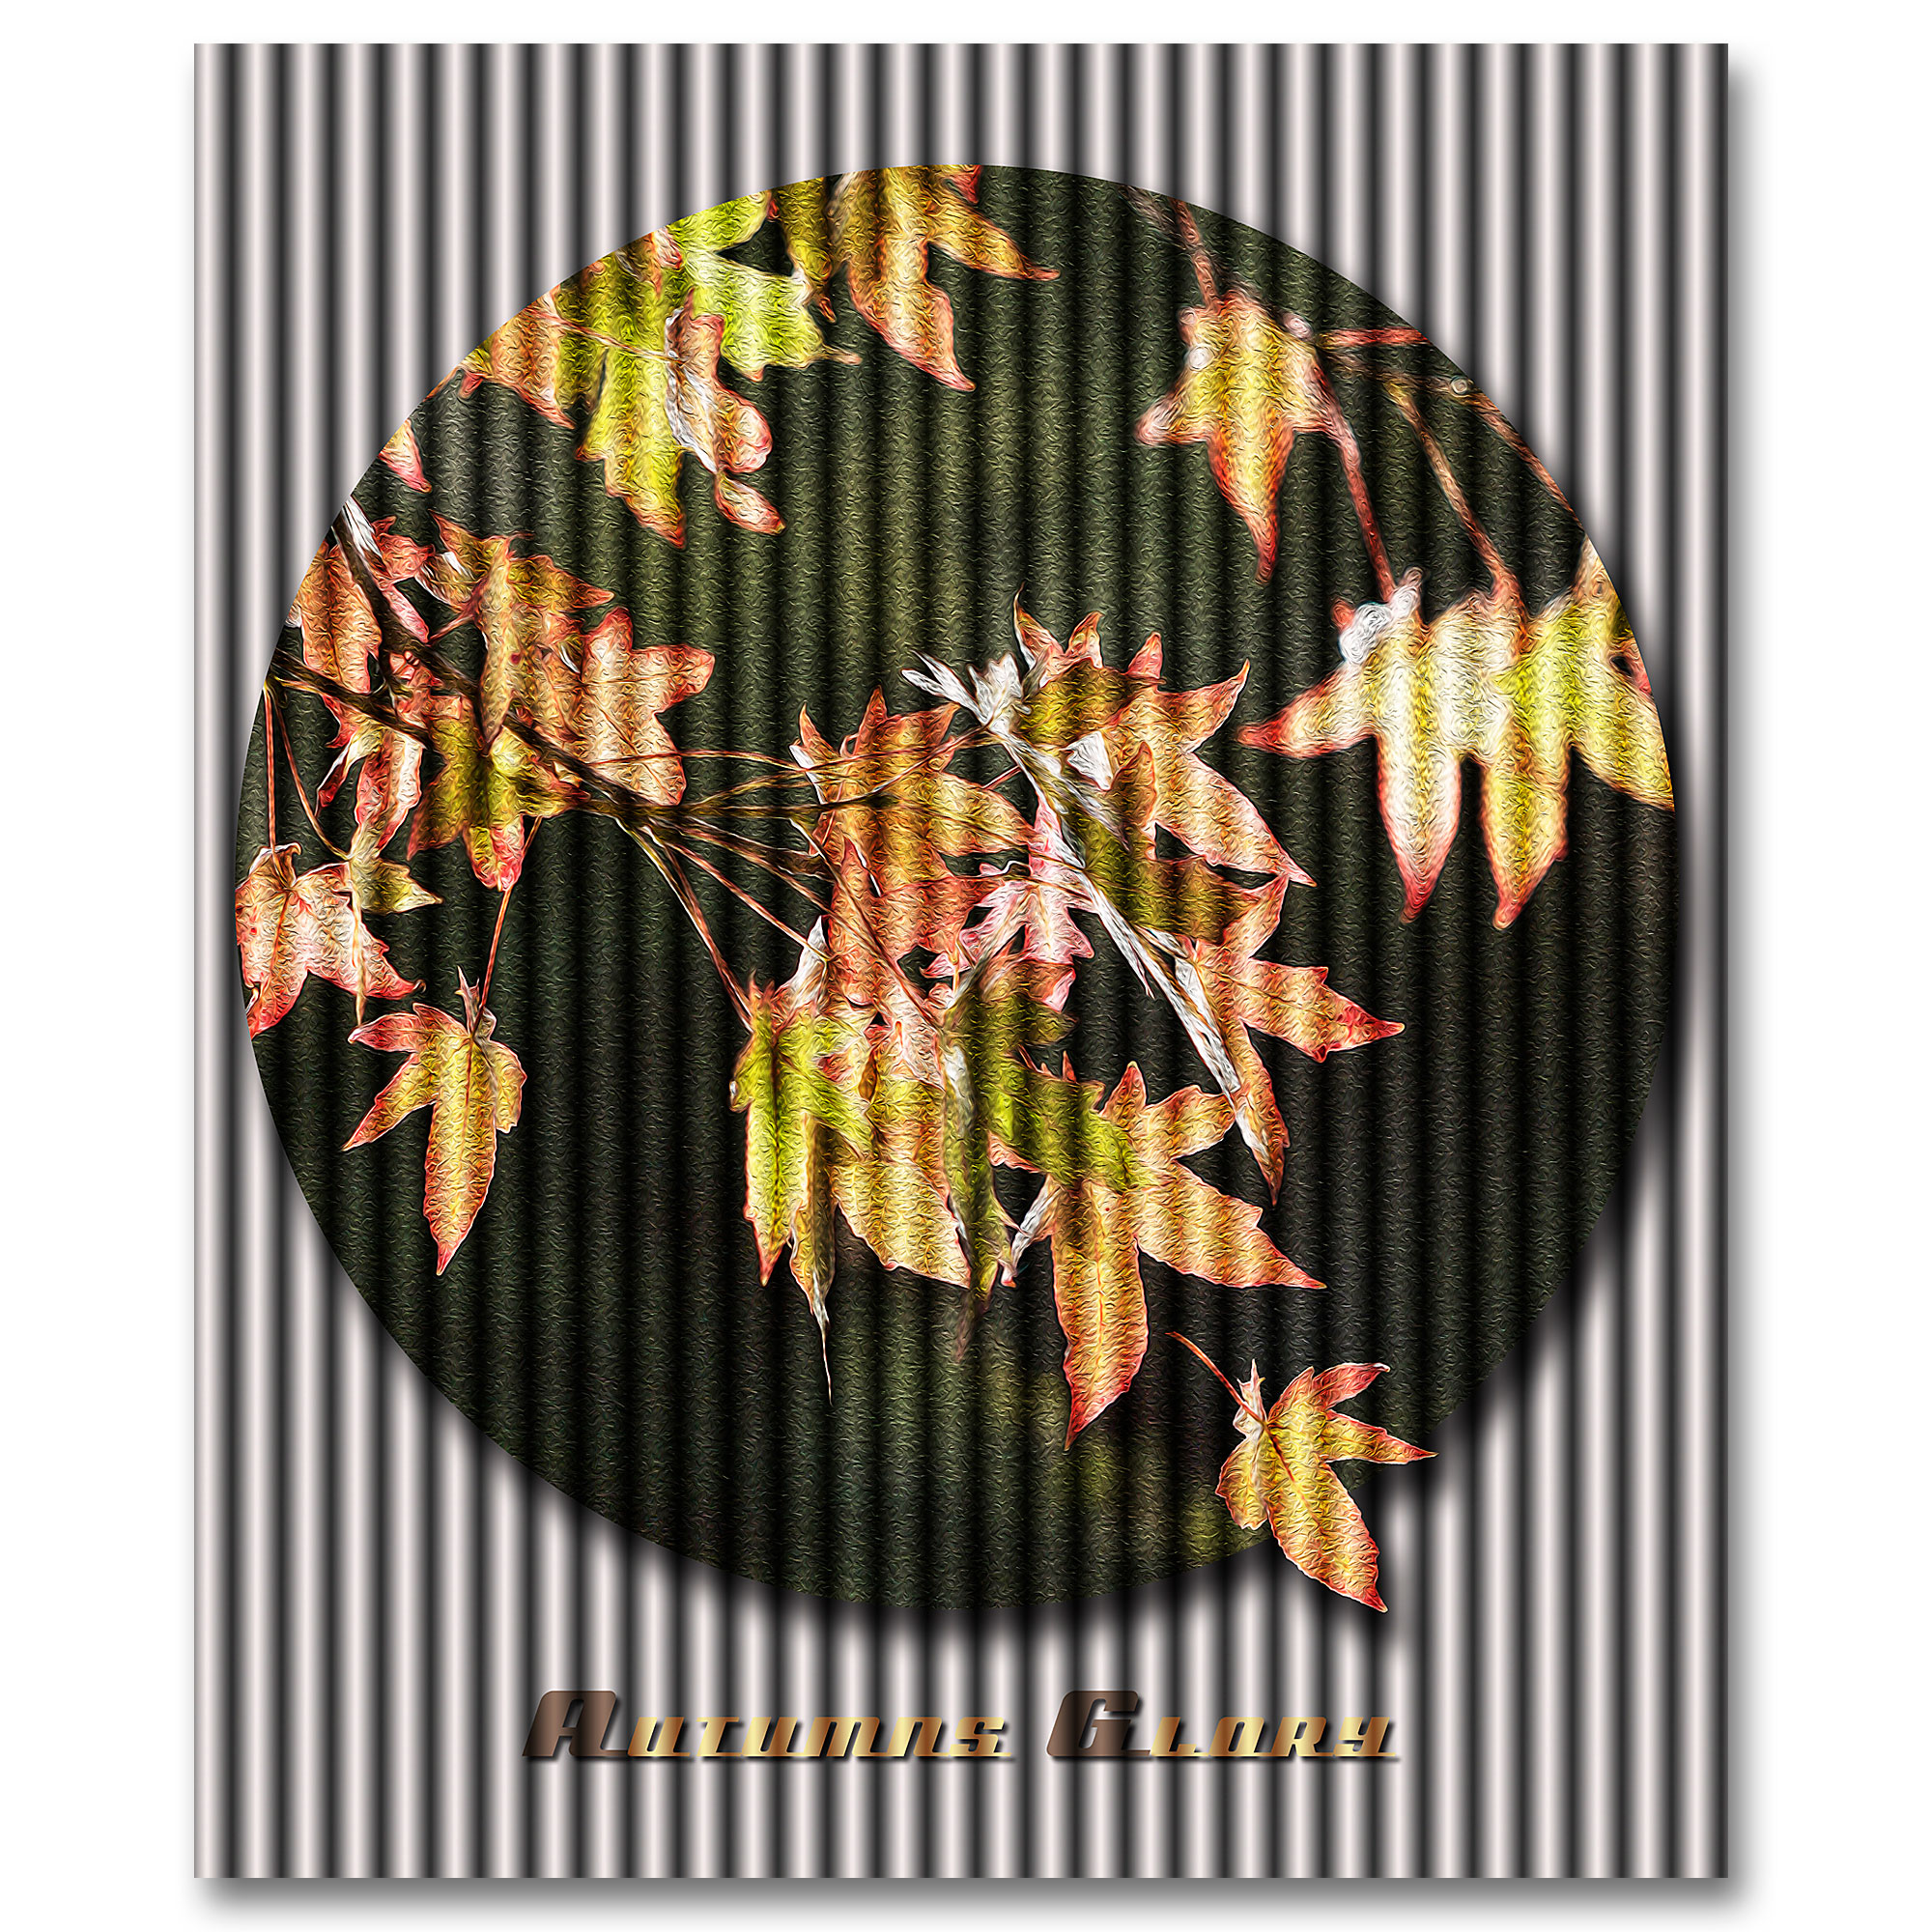 Oaks and Autumn seem to me to be destined to be attractive, art by ian anderson.